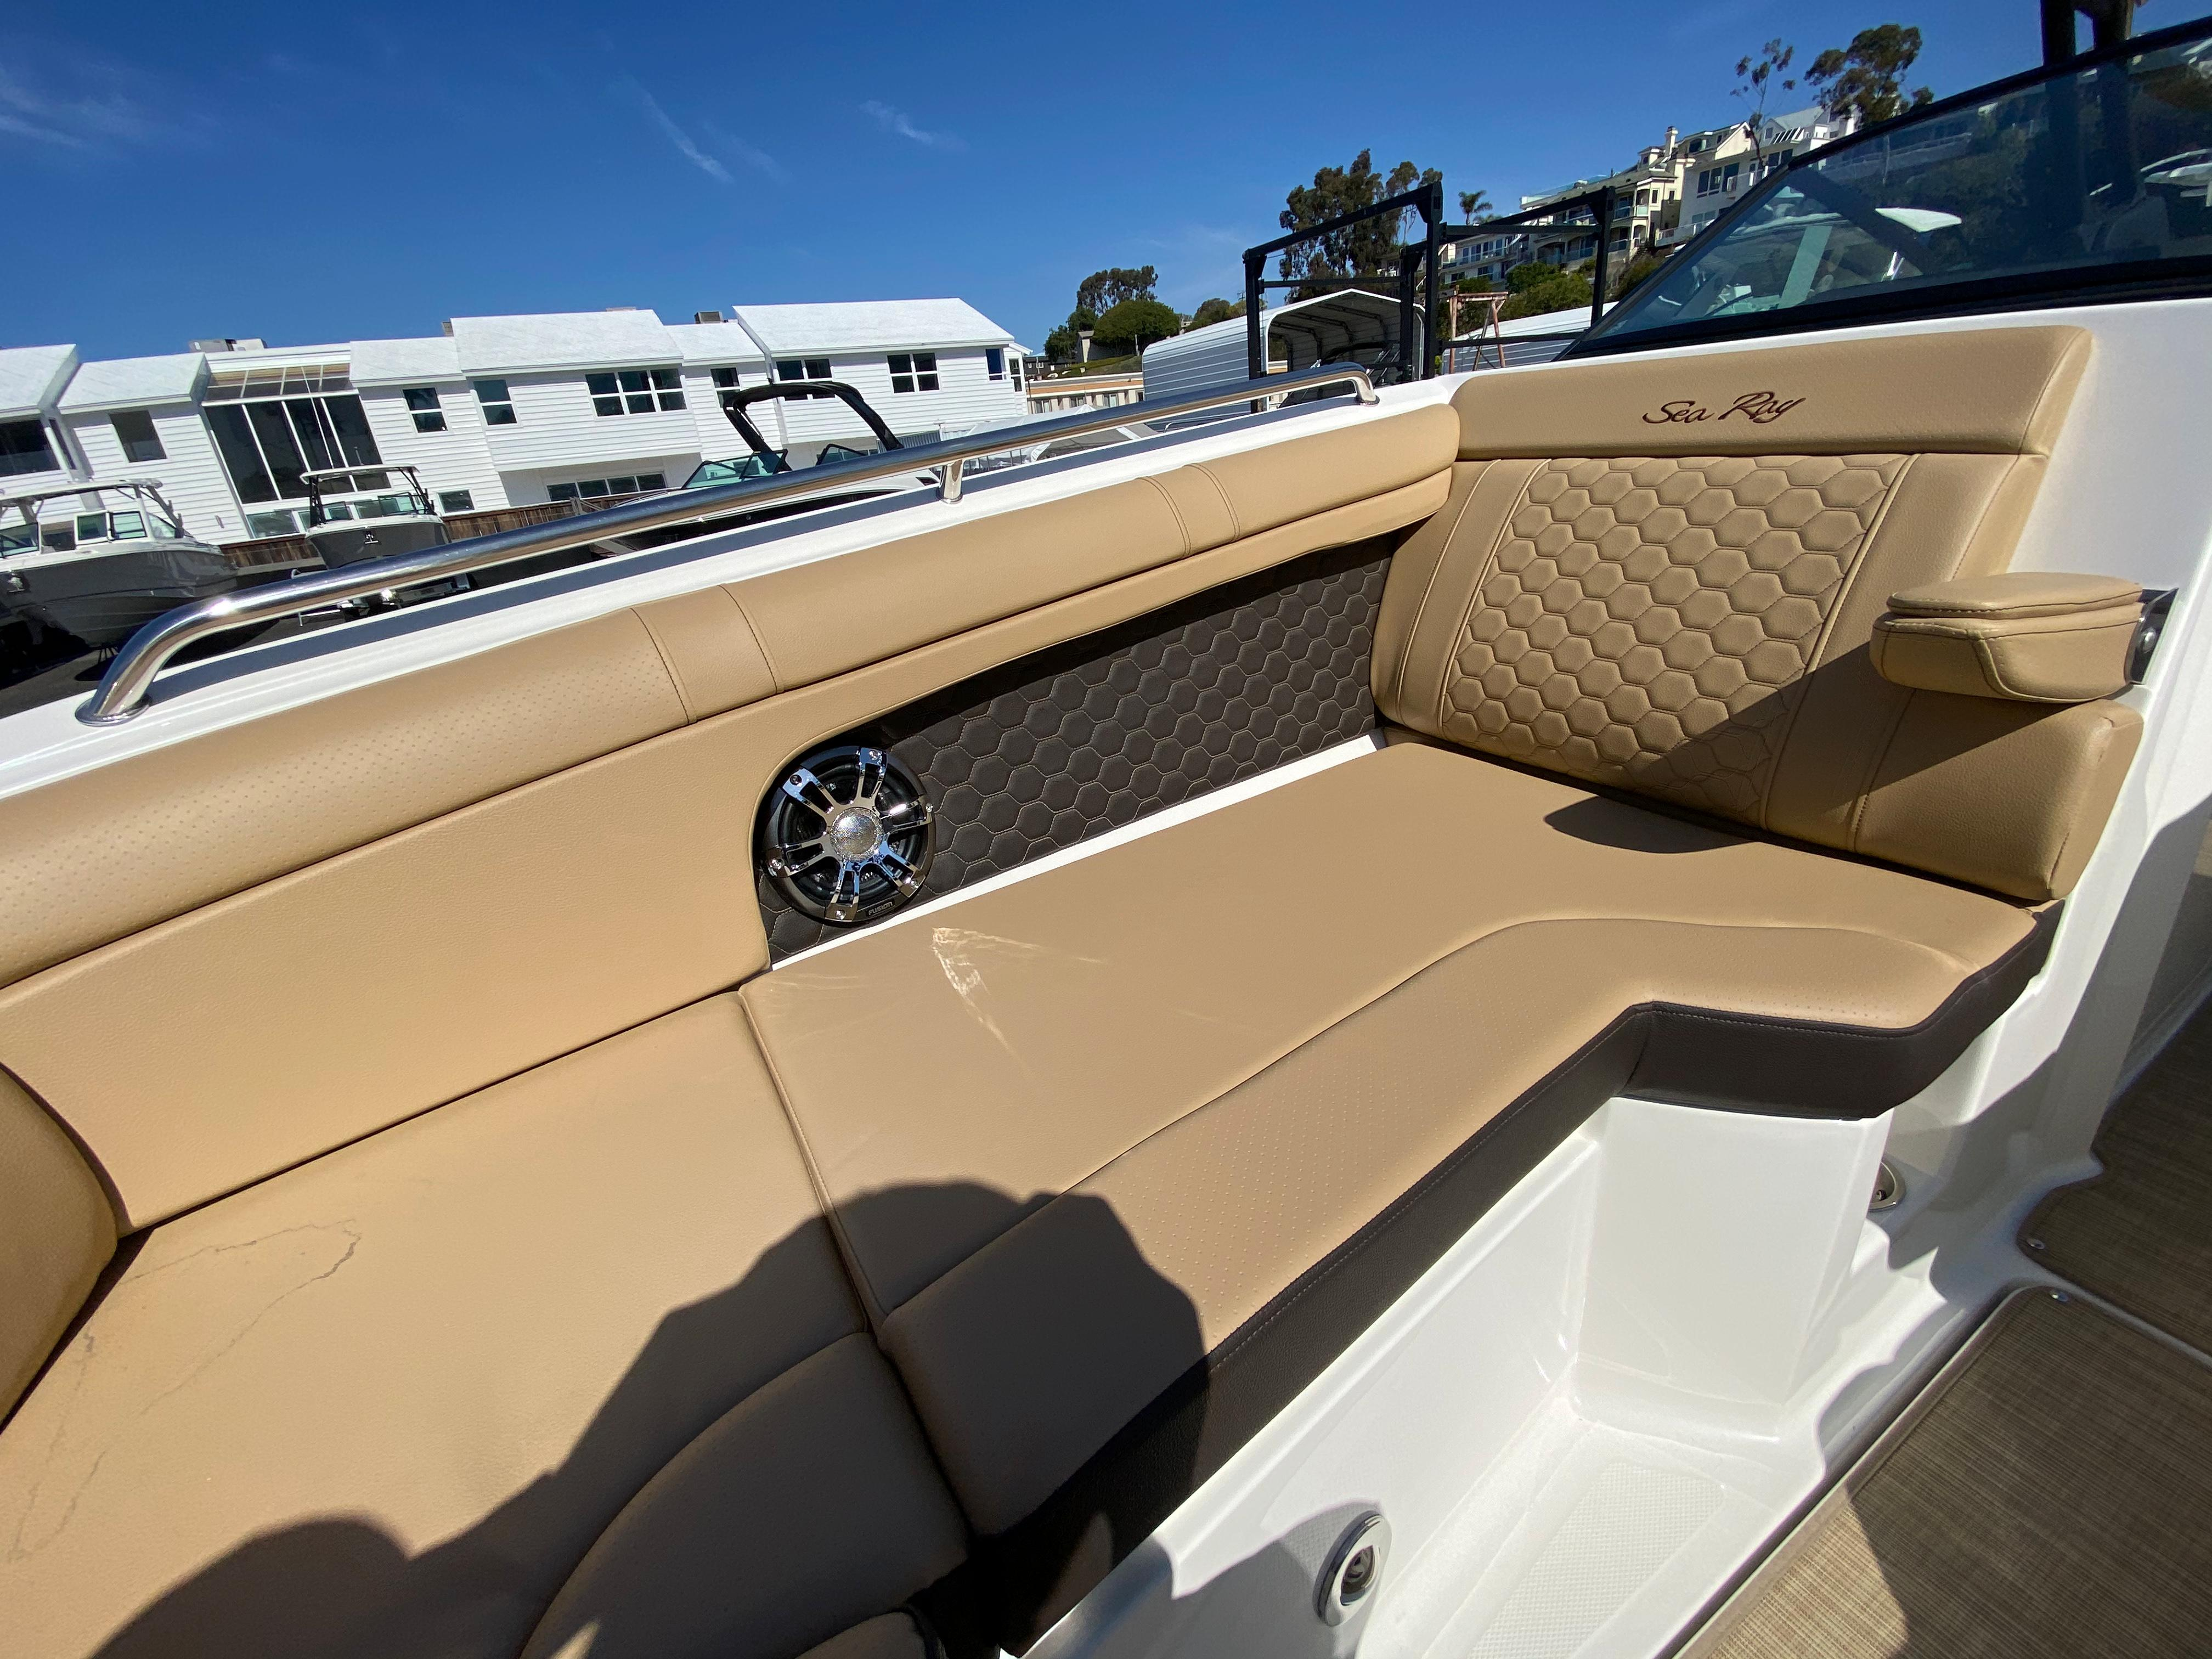 2021 Sea Ray SDX 270 #S1847A inventory image at Sun Country Coastal in Newport Beach